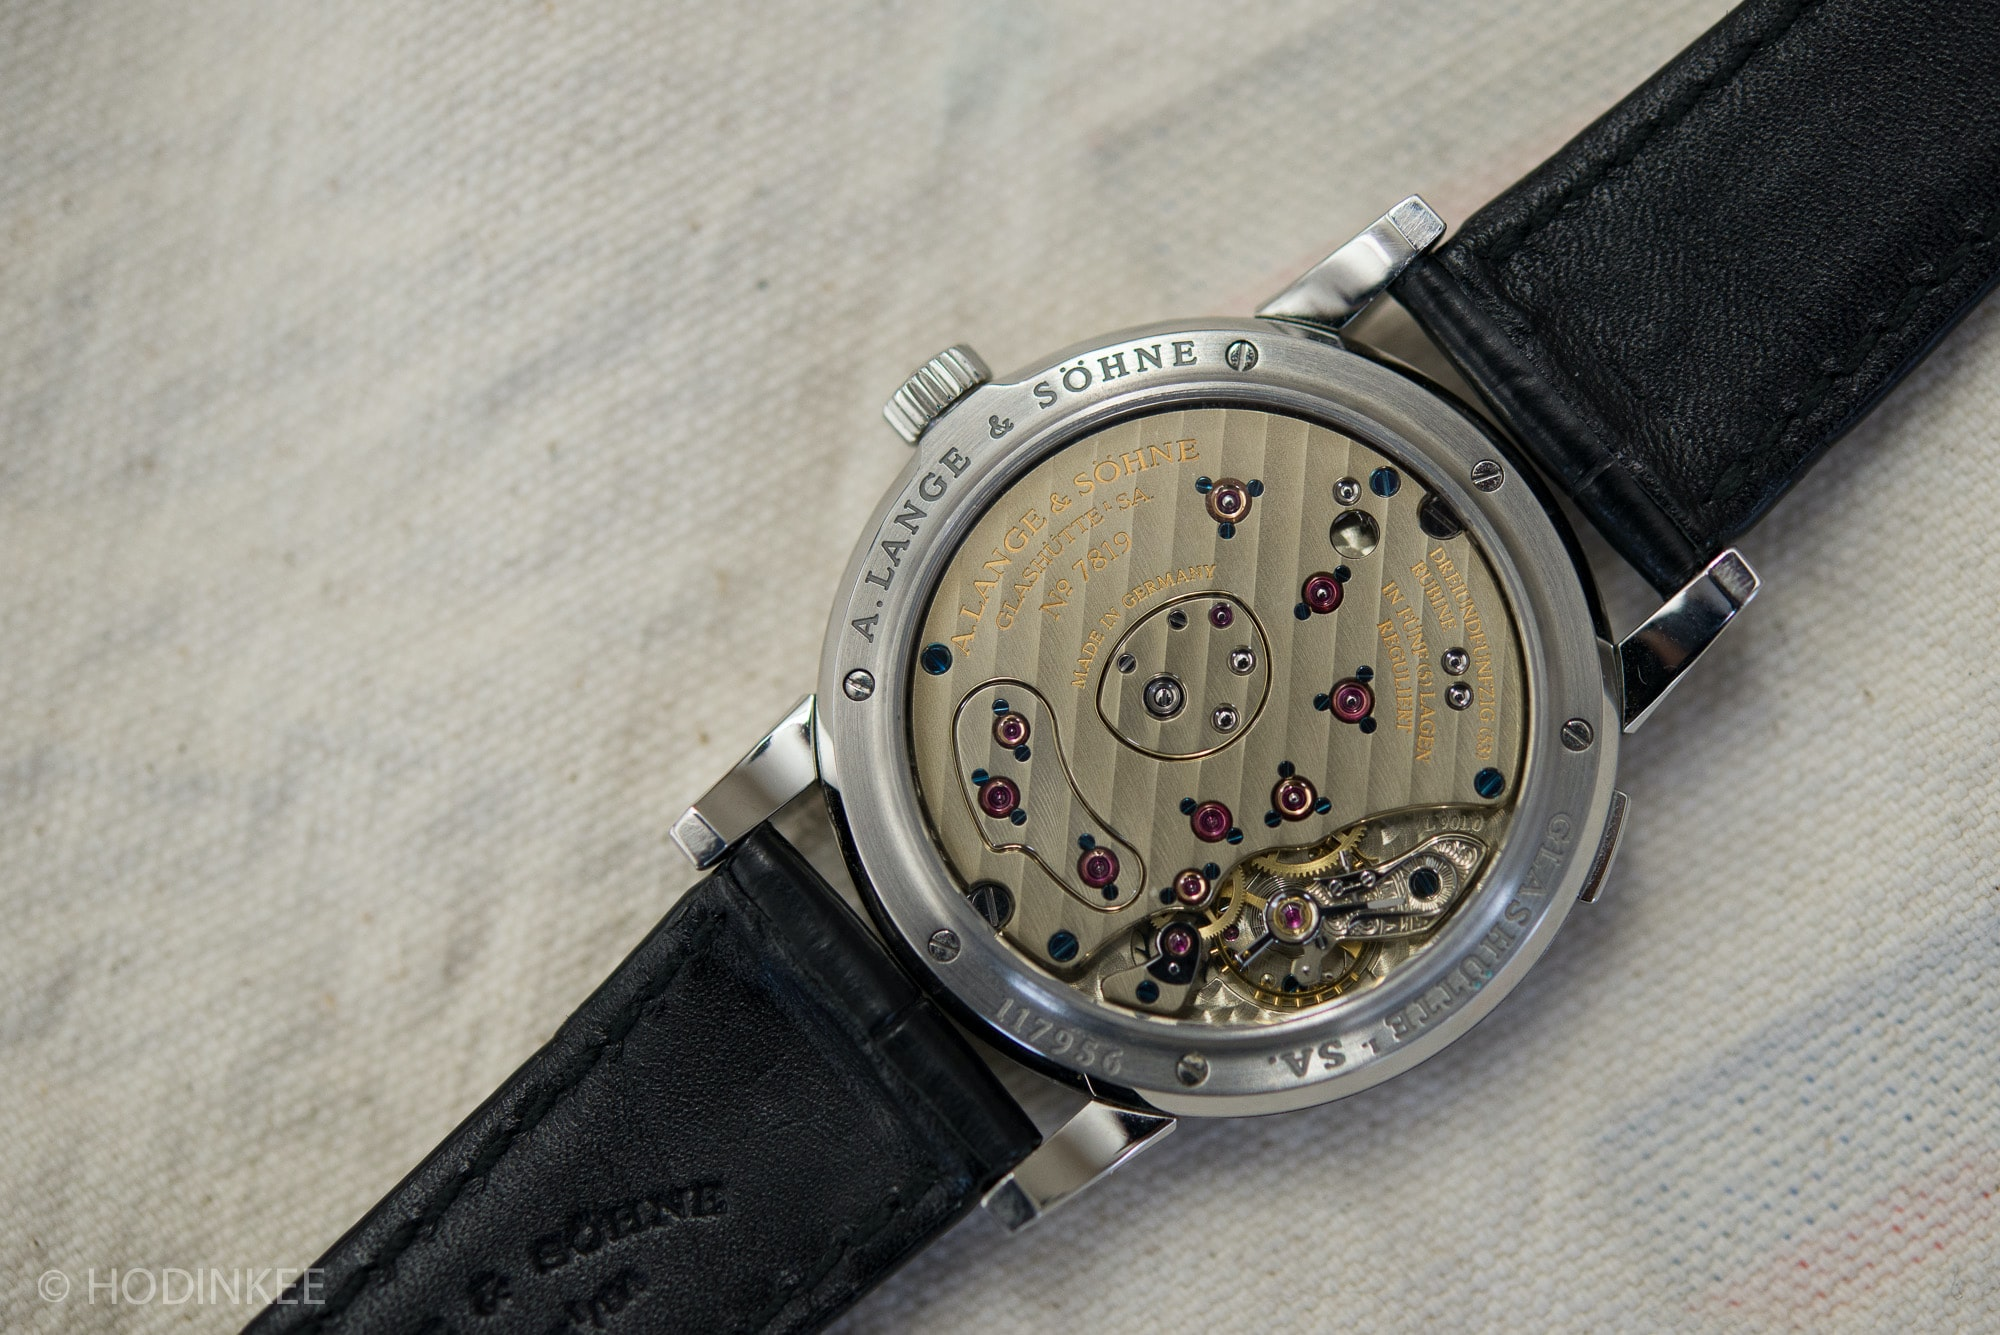 Breaking News: Christie's To Offer Mega Rare Steel Lange 1 With Black Dial In June (Live Pics, Estimates) Breaking News: Christie's To Offer Mega Rare Steel Lange 1 With Black Dial In June (Live Pics, Estimates) Lange1SteelBlackDial 2